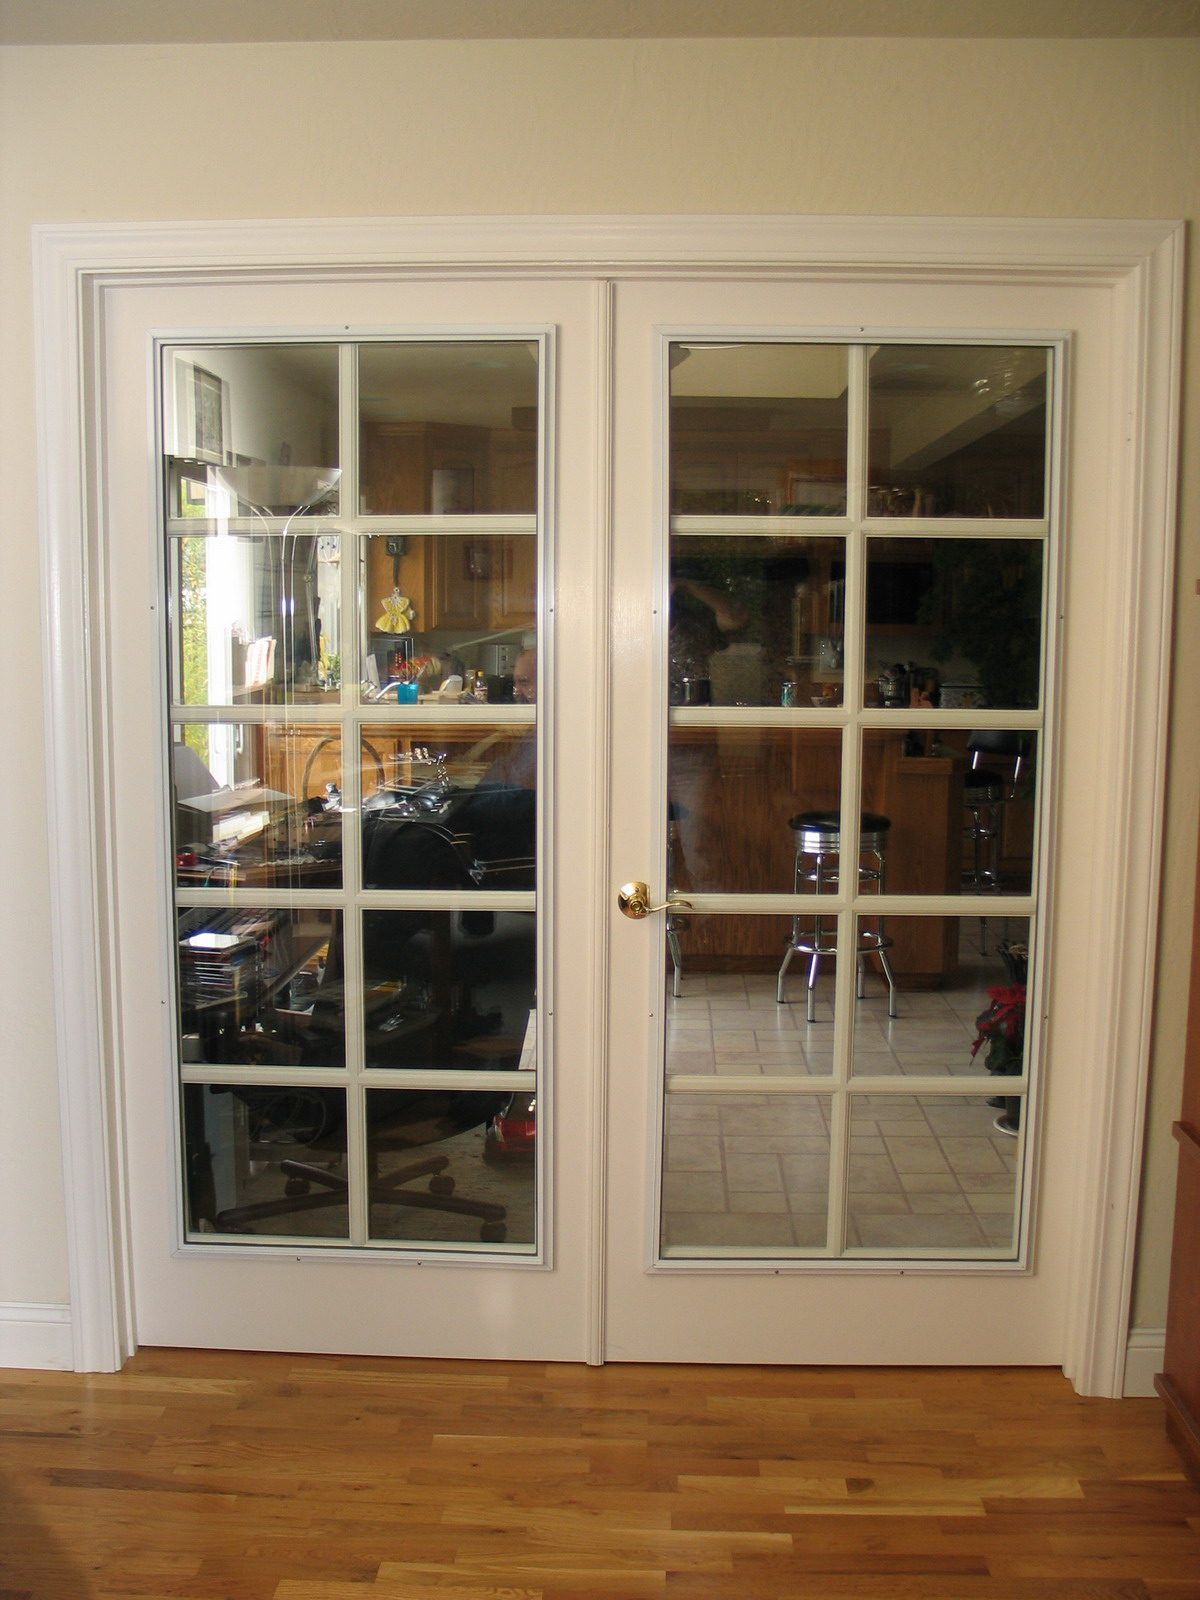 Interior glass doors - Soundproofing Glass Panel Mounted On An Interior French Door